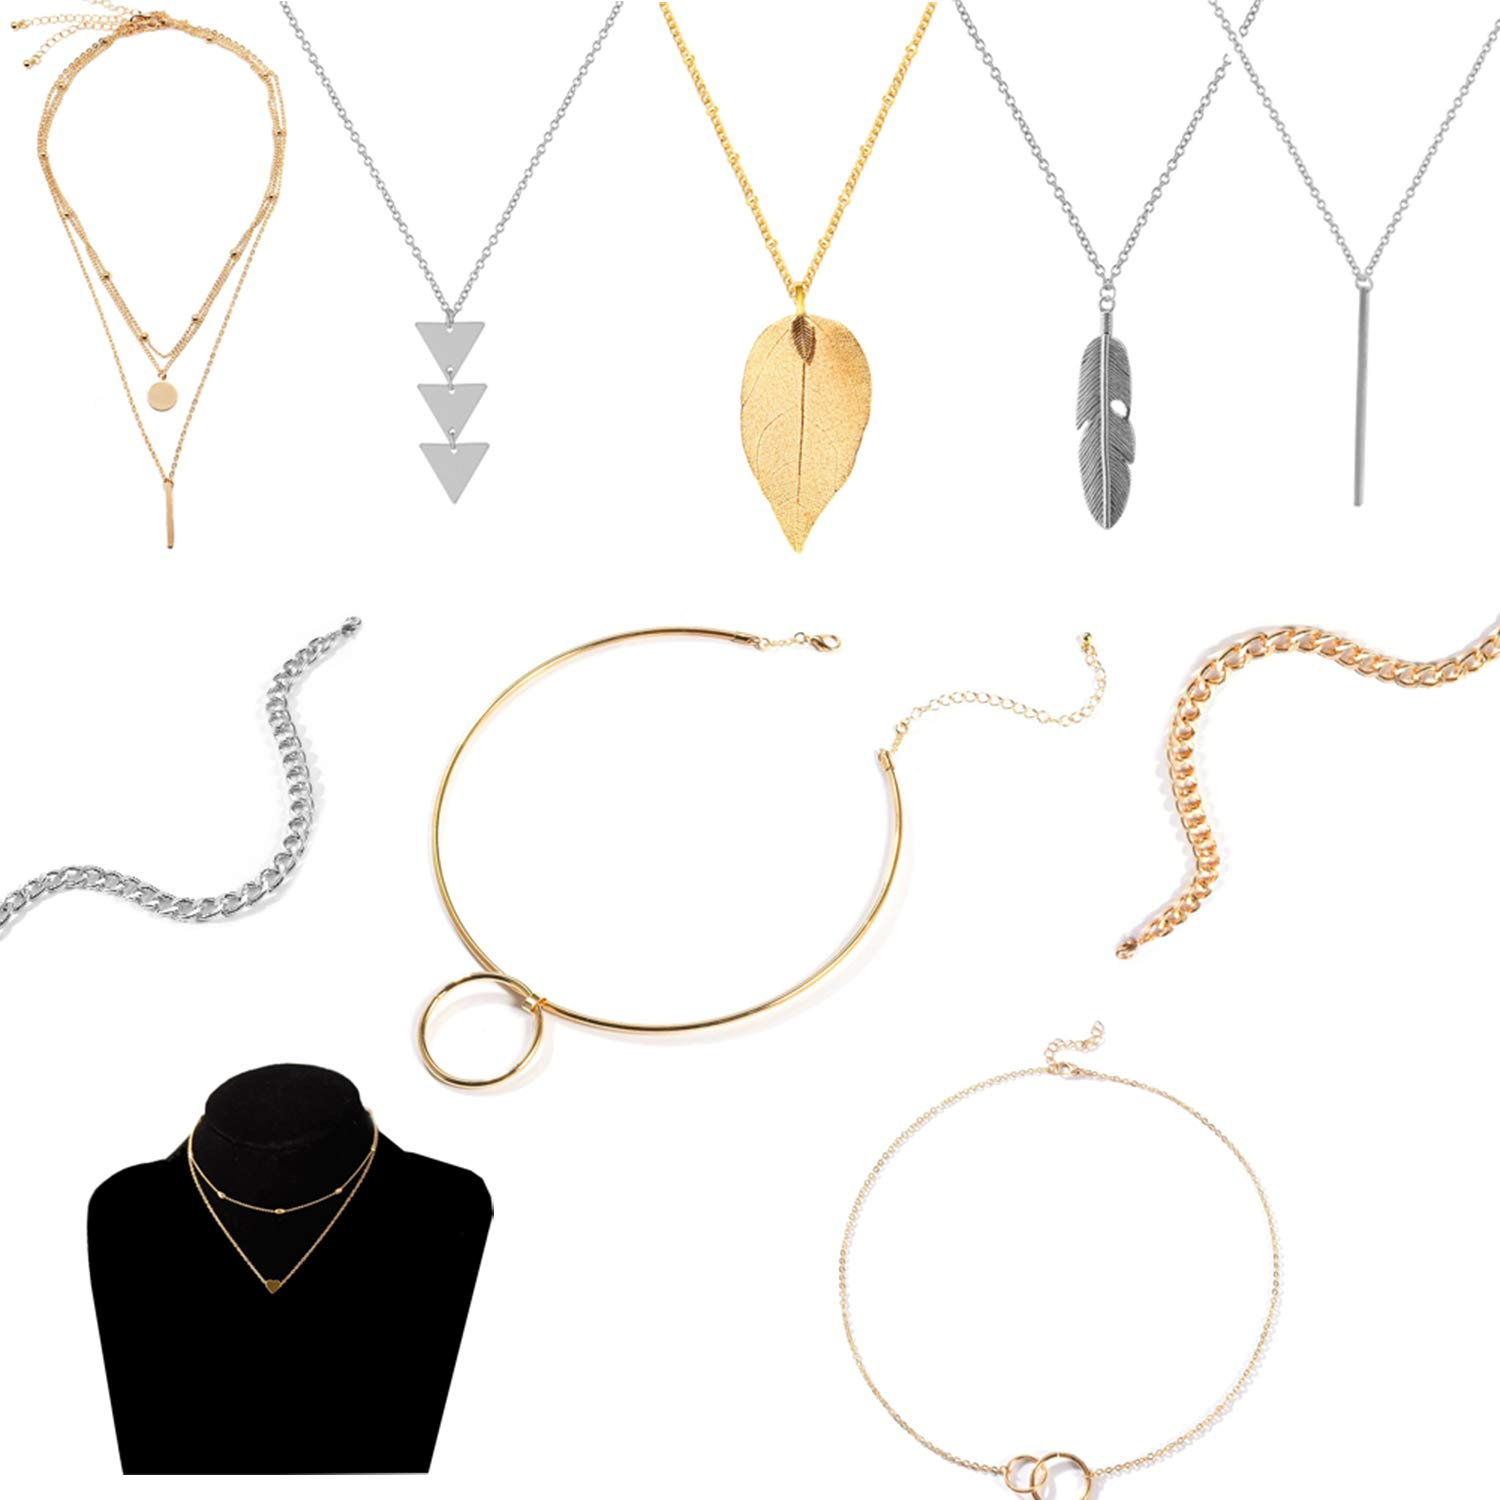 10 Pieces Clavicle Chain Ring Neck Collar & Long Pendant Necklace Set Y Tassel Leaf Circle Bar Feather Tassel Big Small Circle Geometric Disc Necklace for Women/Girls